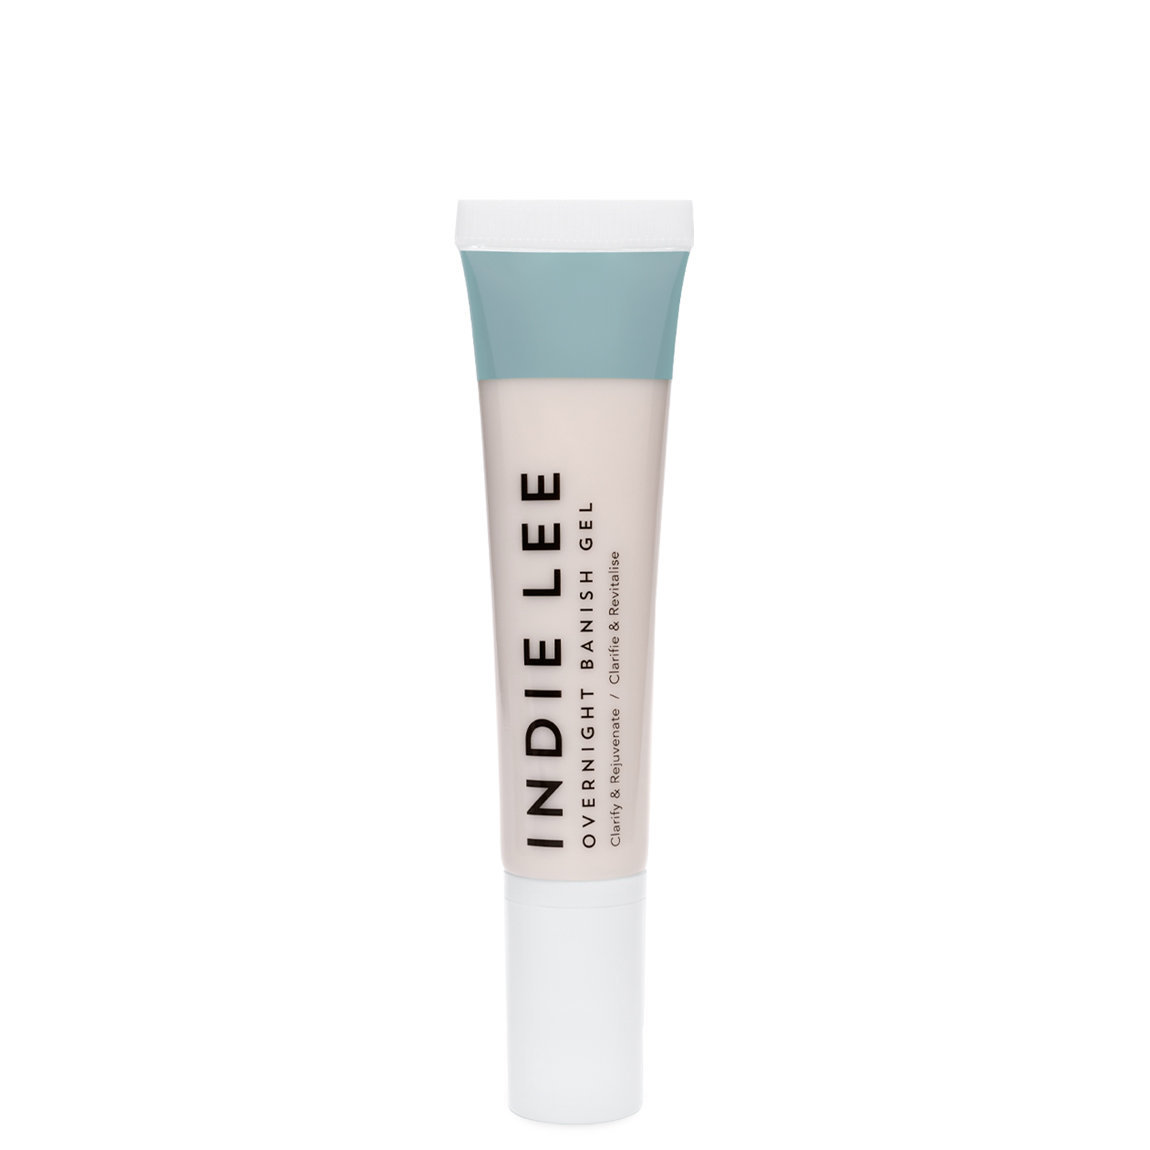 Indie Lee Overnight Banish Gel alternative view 1 - product swatch.